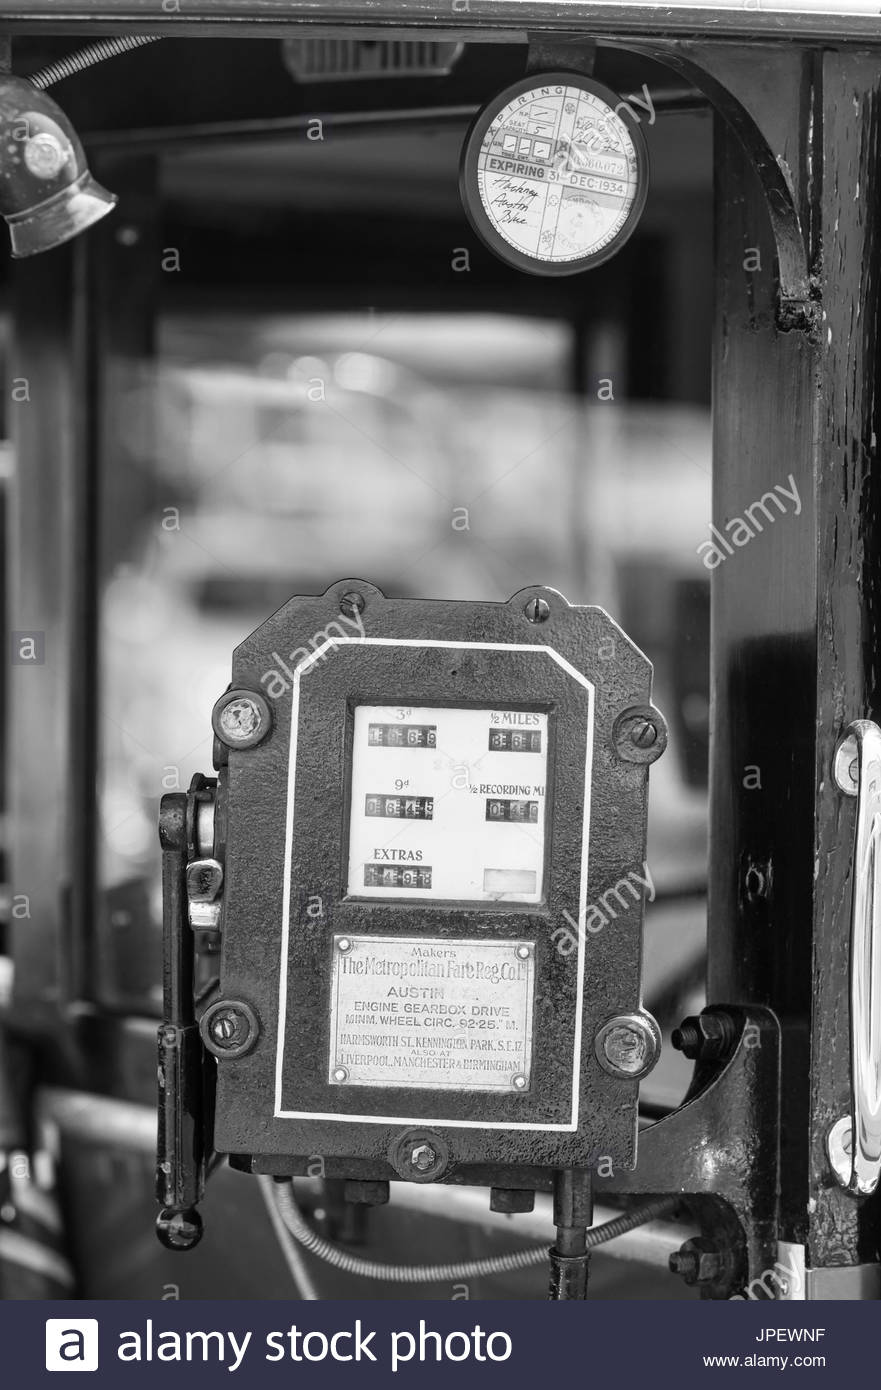 Vintage taximeter from 1930s made by The Metropolitan Fare Reg Company fitted to a vintage Austin 12/4 london taxicab. Black and white. B&W. - Stock Image